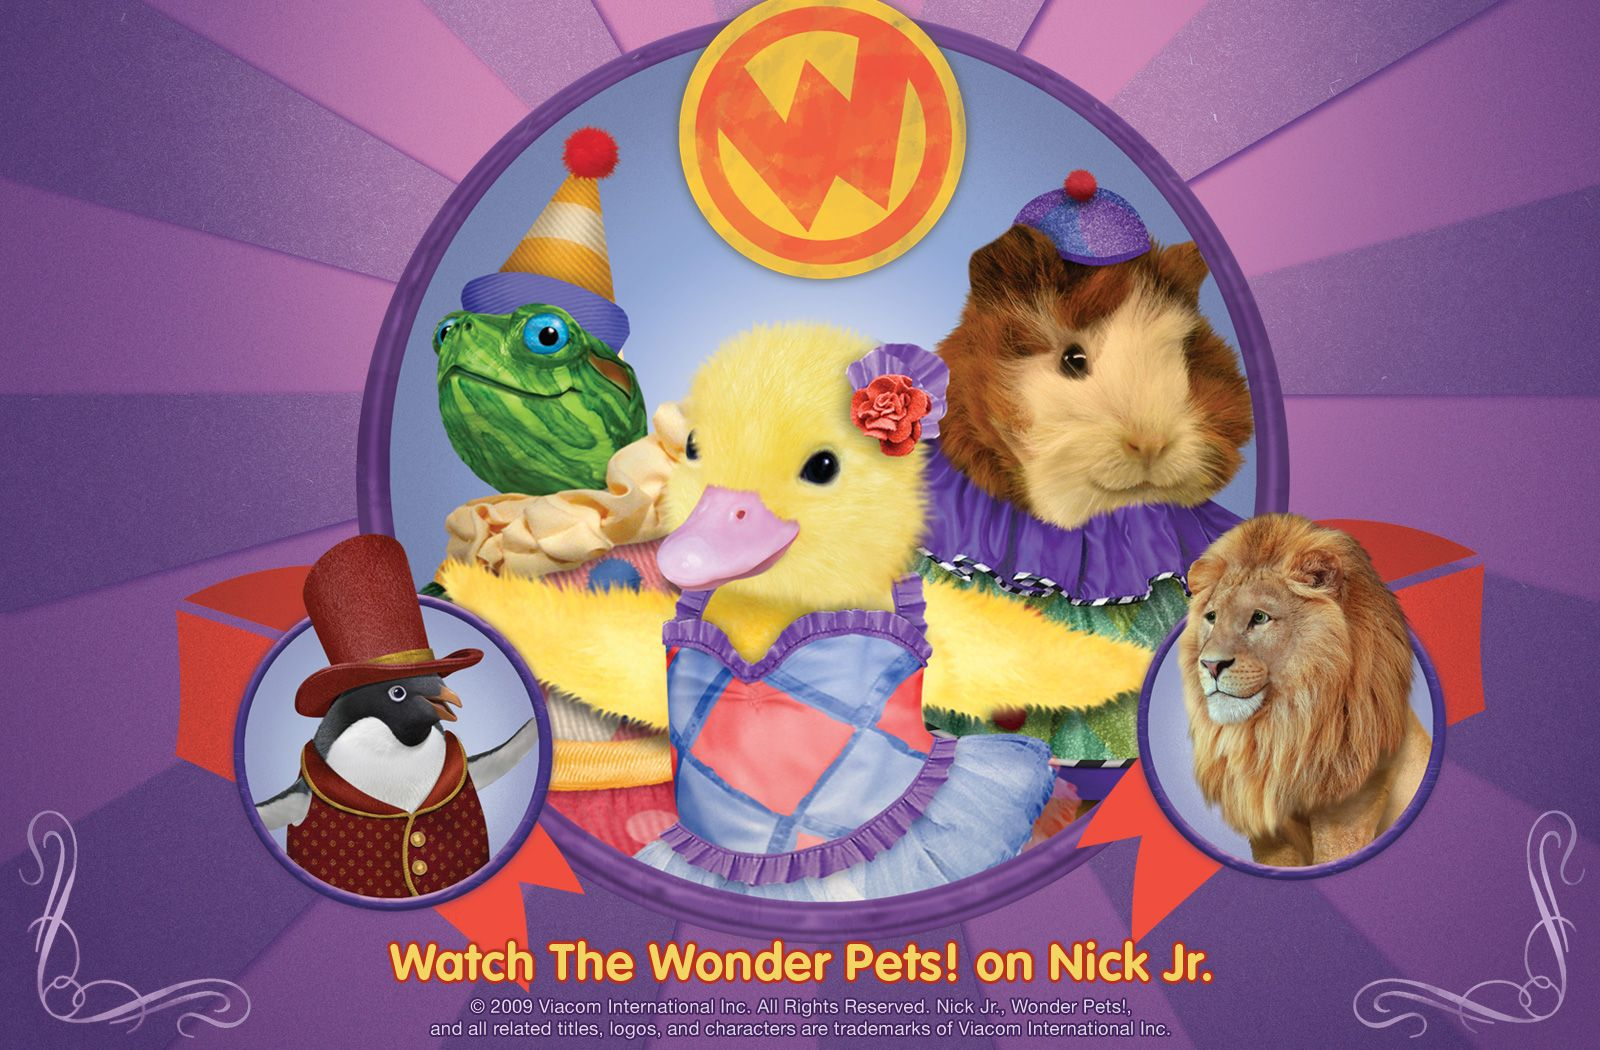 Wonder Pets Full Episodes Videos And Games On Nick Jr Kids Shows Wonder Pets Nickelodeon Cartoons